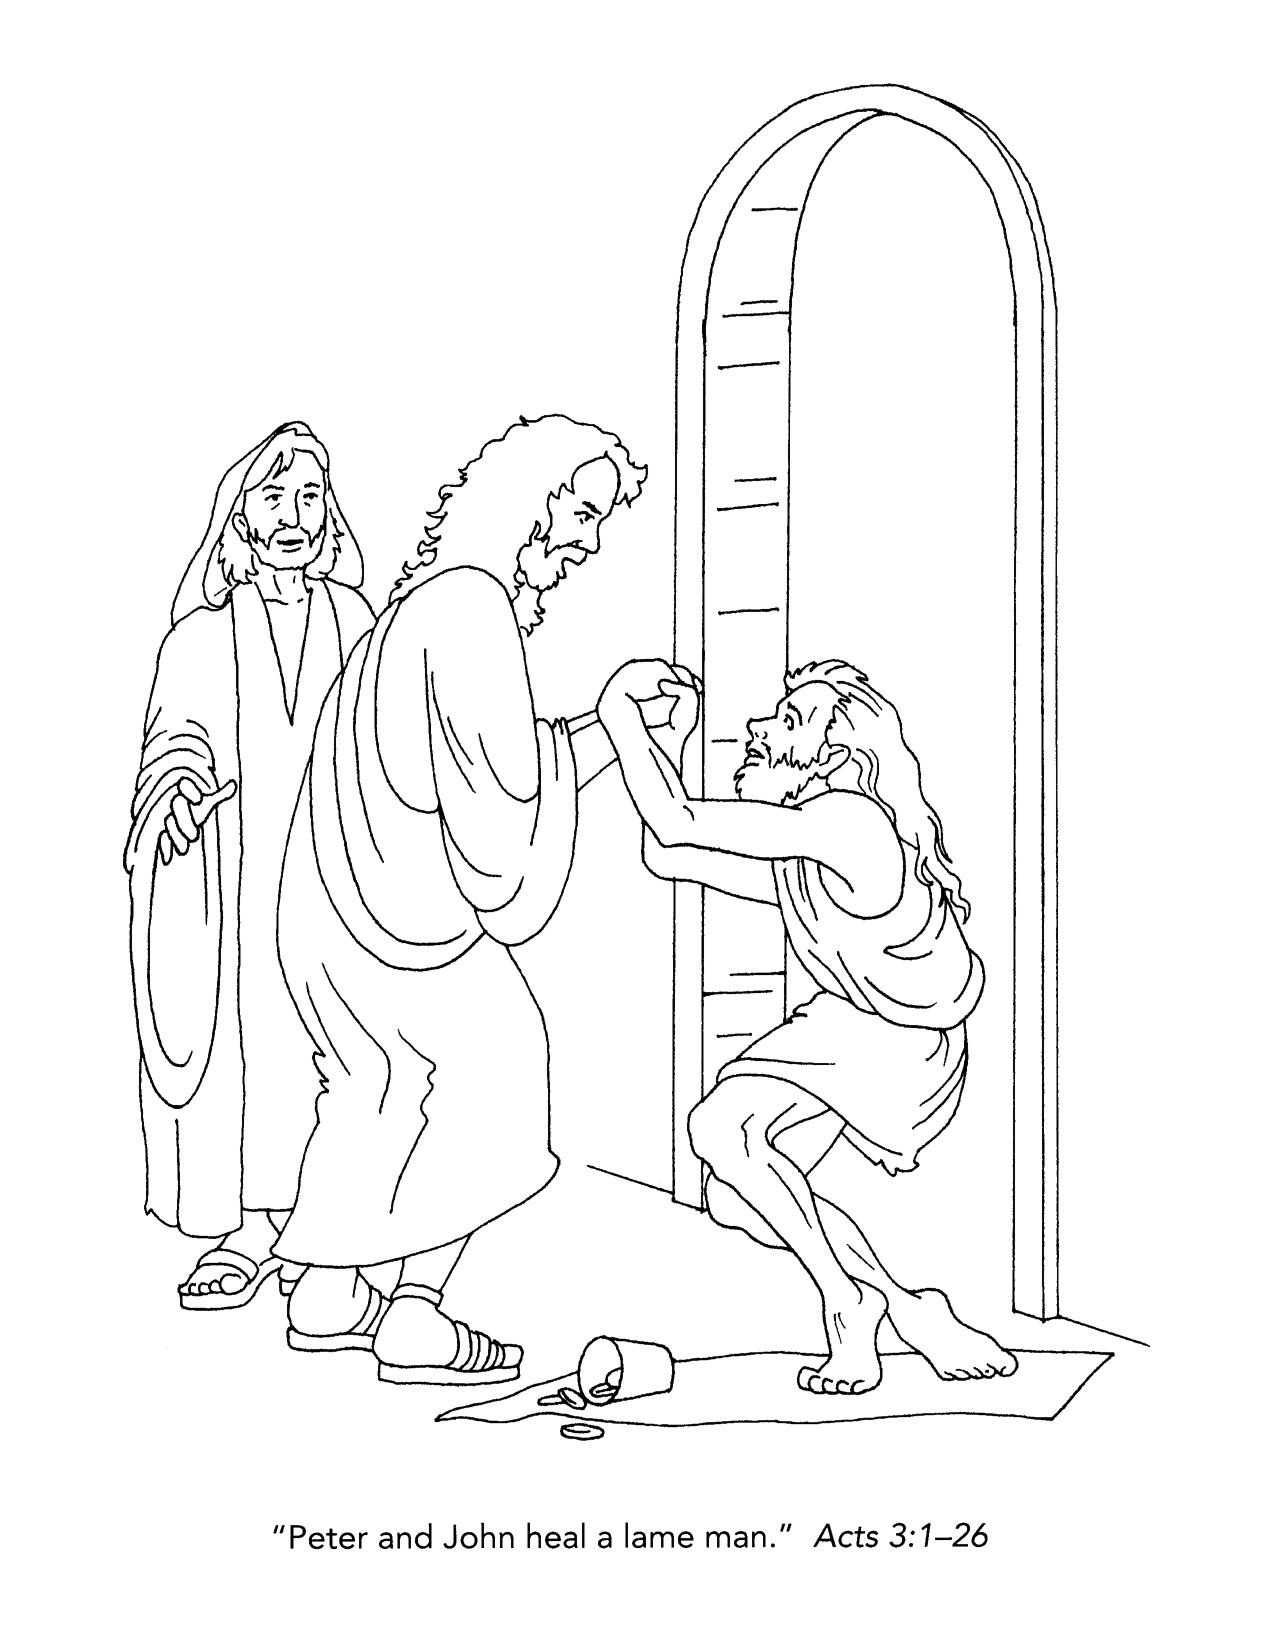 Peter Heals the Lame Man Coloring Page Peter and John Heal A Lame Man Coloring Page